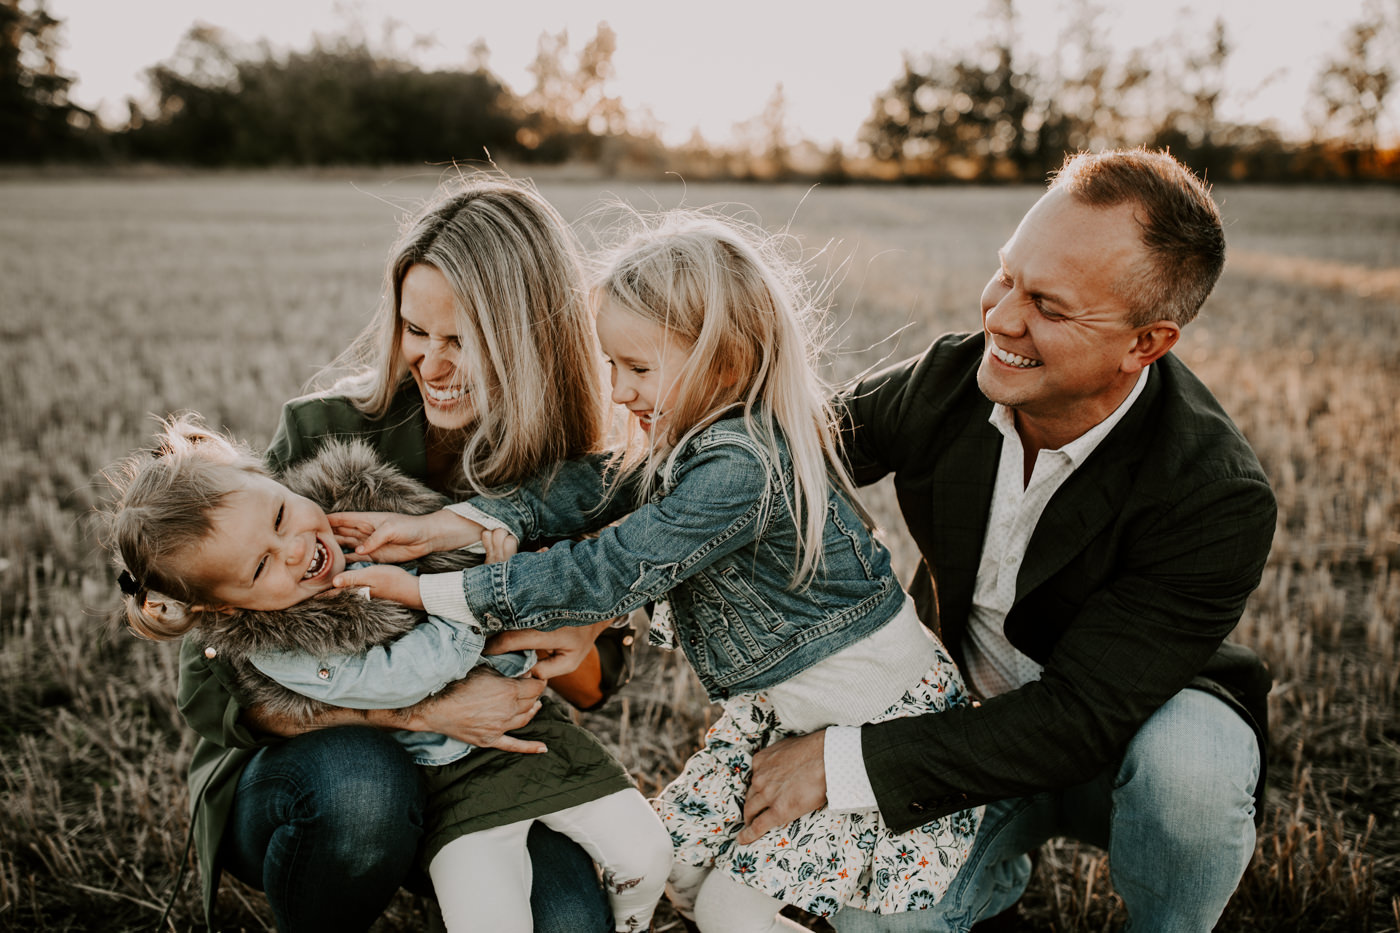 Families - Family sessions start at $315 plus GST and include up to one full hour of shooting. You will receive at least 50 high resolution, edited images, and the memory of a wonderful day with your loved ones. Contact me for details.